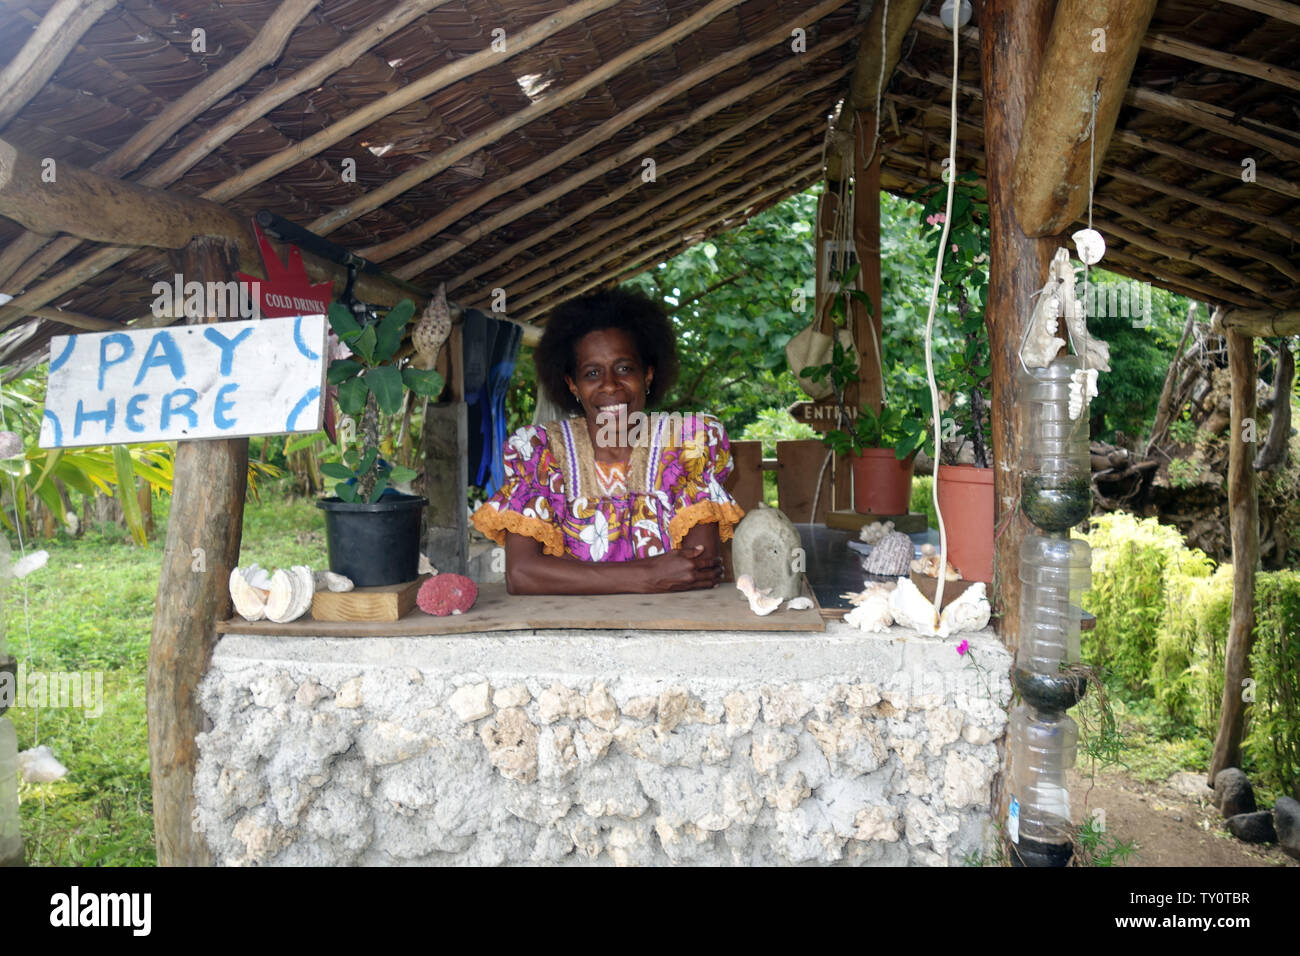 Woman at entry station to marine reserve, Top Rock, Saama, Efate, Vanuatu. No MR or PR - Stock Image